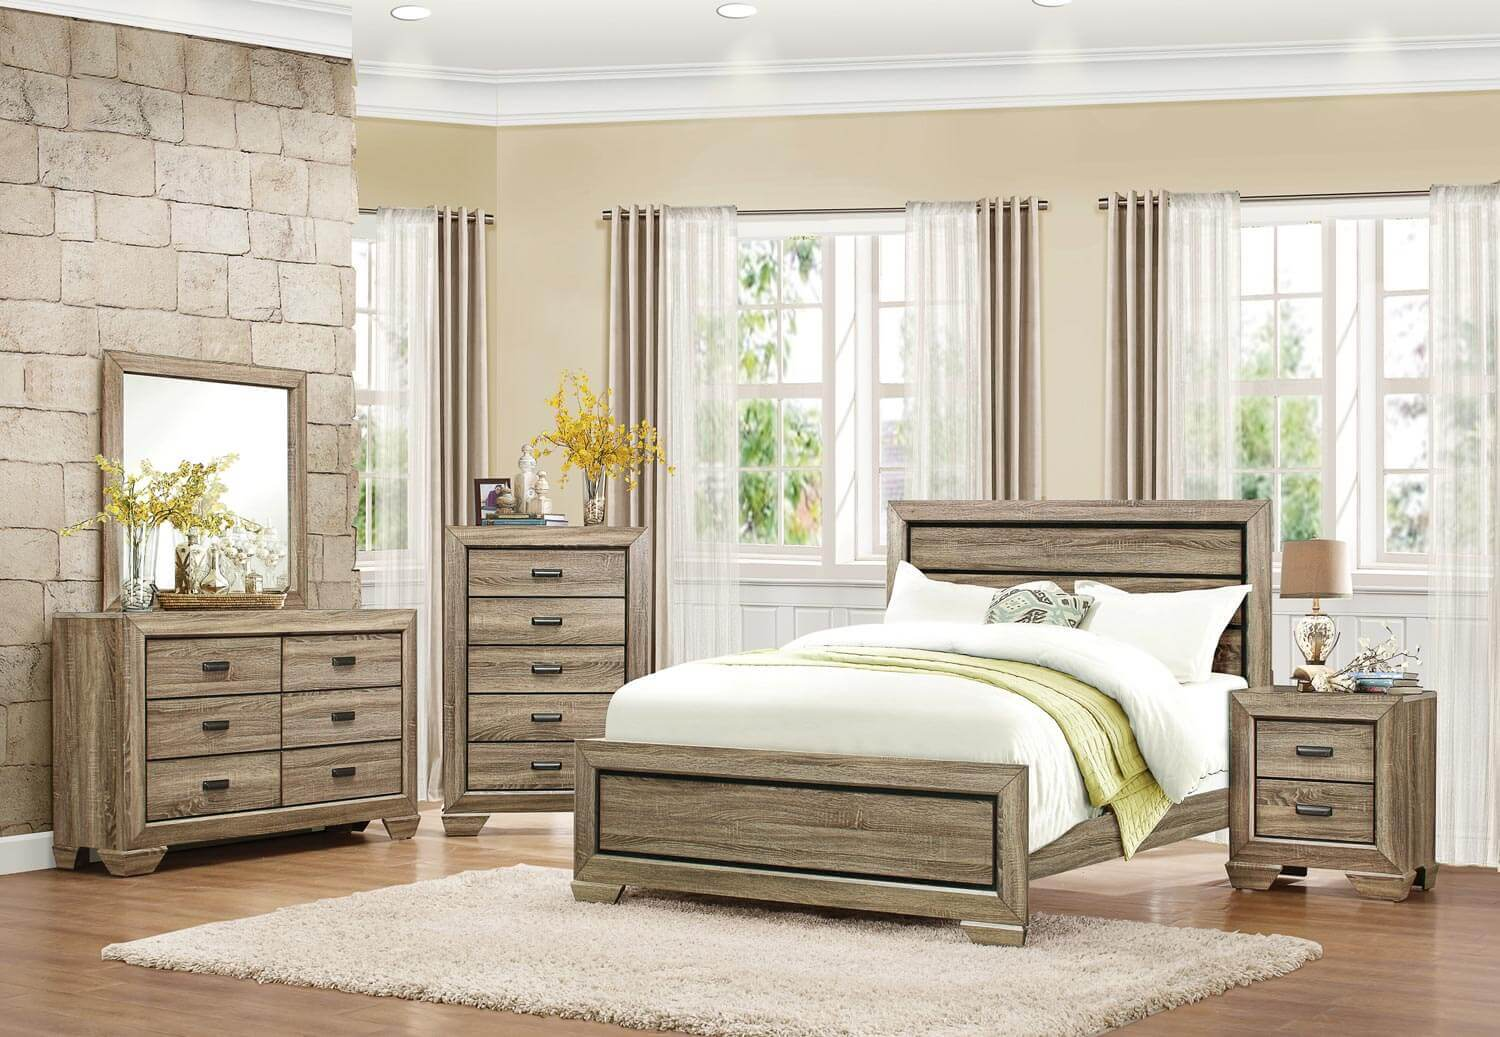 Panel Bed Ideas